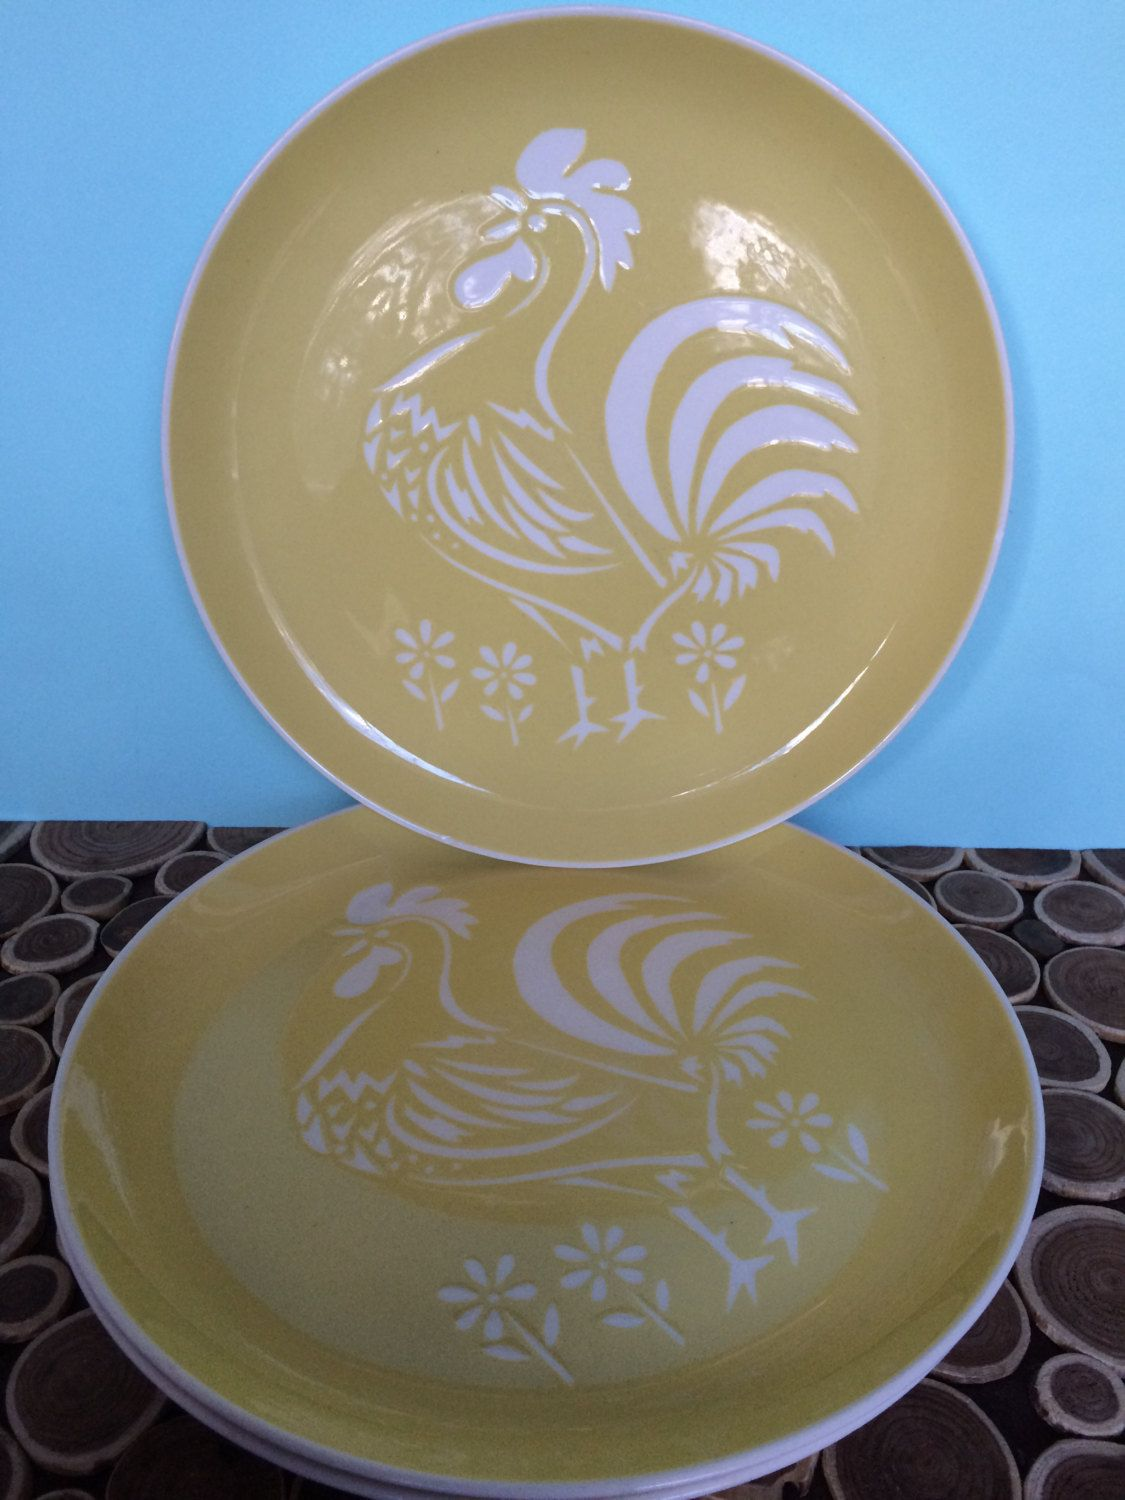 Harkerware Cock Ou0027Morn in Yellow - 10.5 inch Dinner Plates - Set of 3 - Atomic Midcentury Modern Vintage Dinnerware & Harkerware Cock Ou0027Morn in Yellow - 10.5 inch Dinner Plates - Set of ...